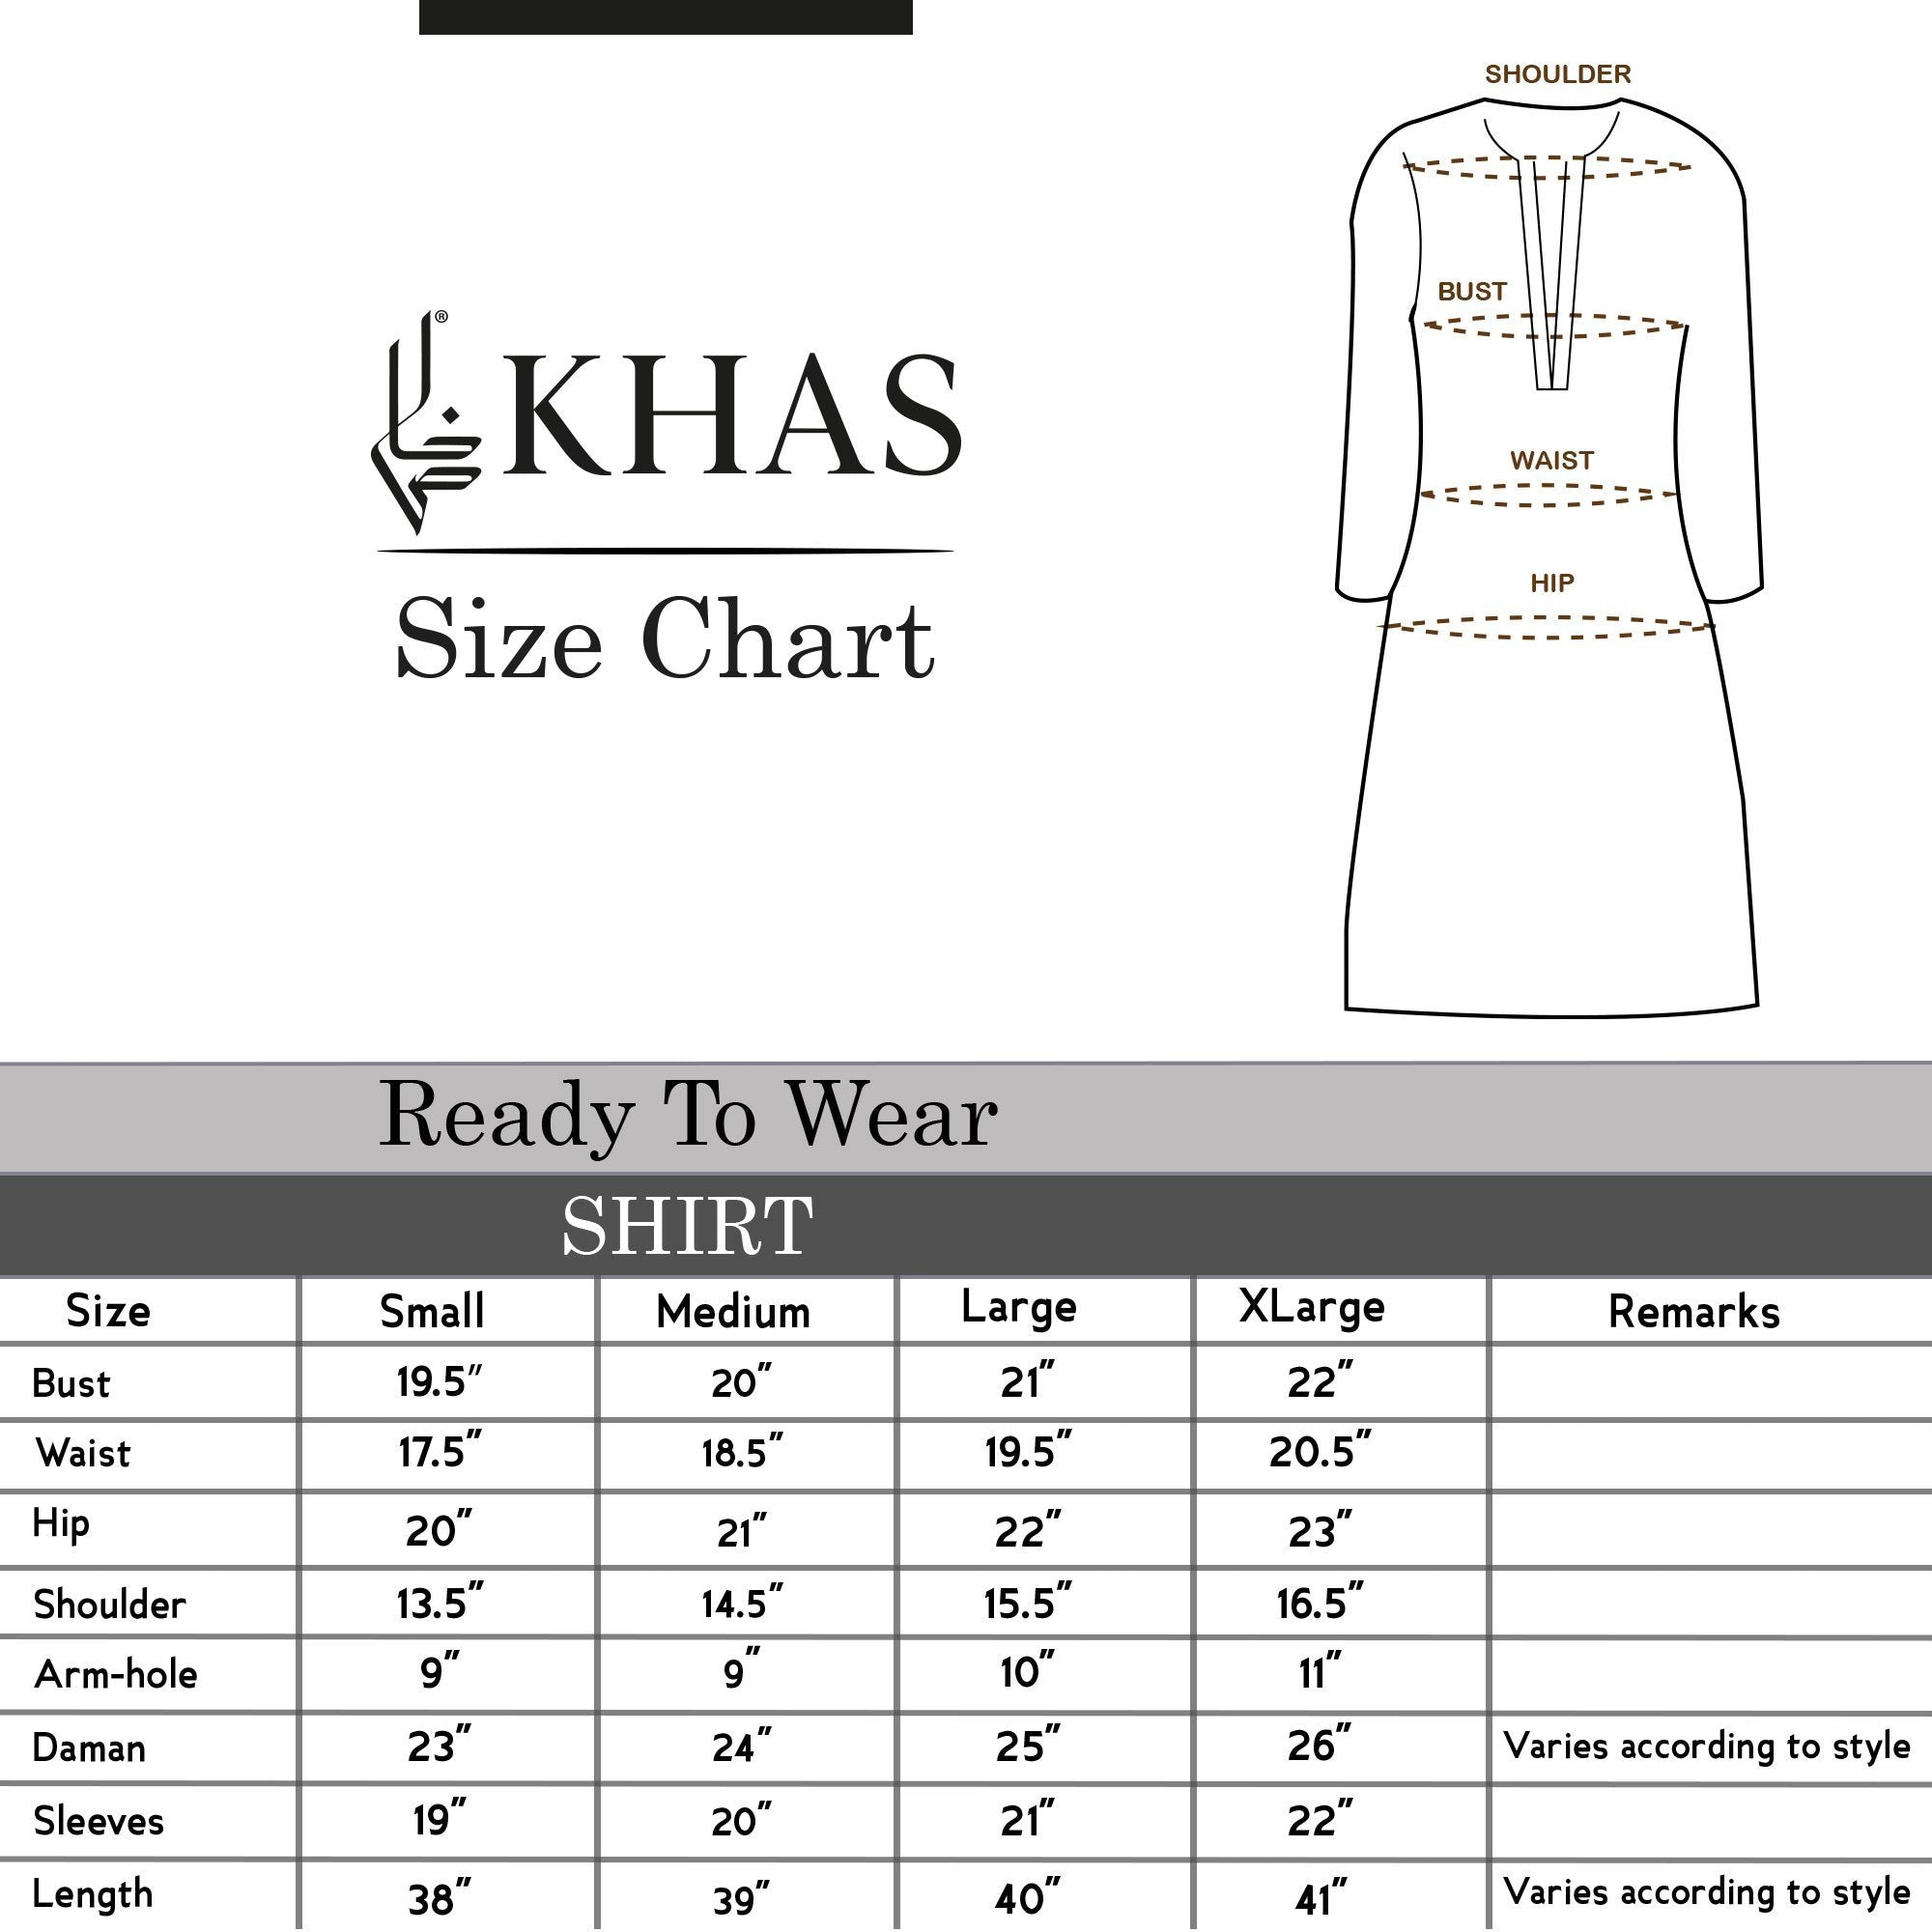 Organza Embroidered Shirt ER-51 Luxury Pret FASSTILAD